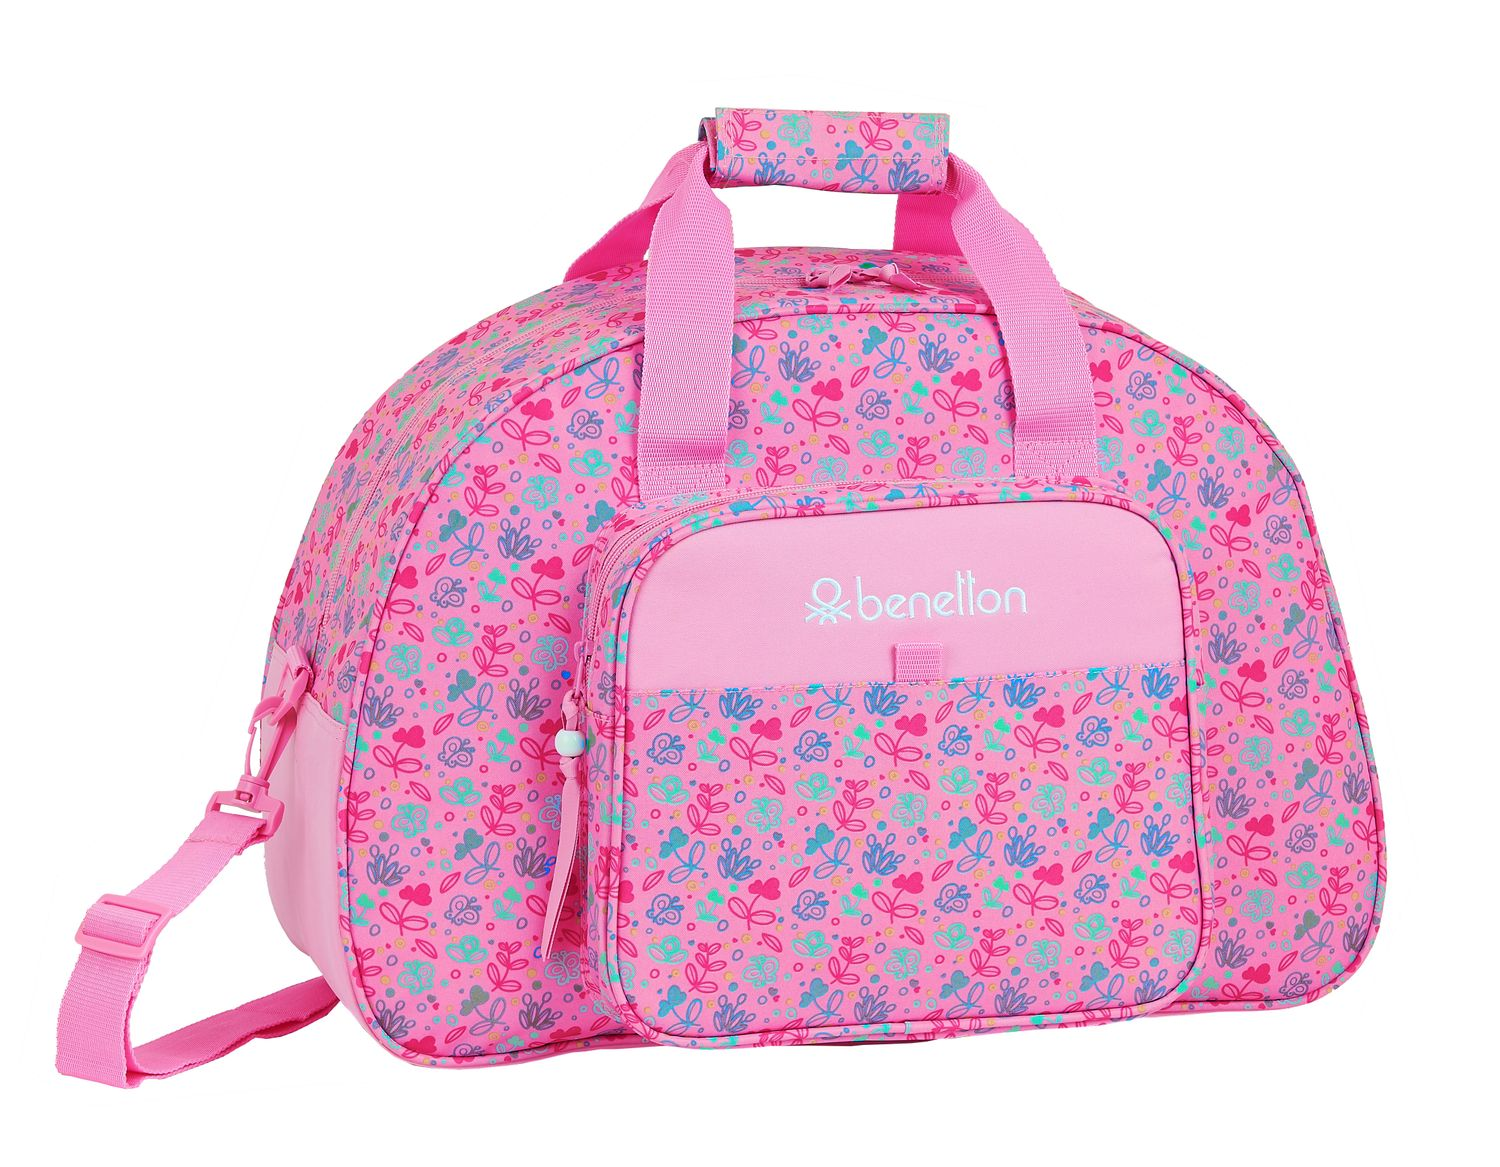 BENETTON Butterflies Pink Travel Holdall Bag 48cm – image 1